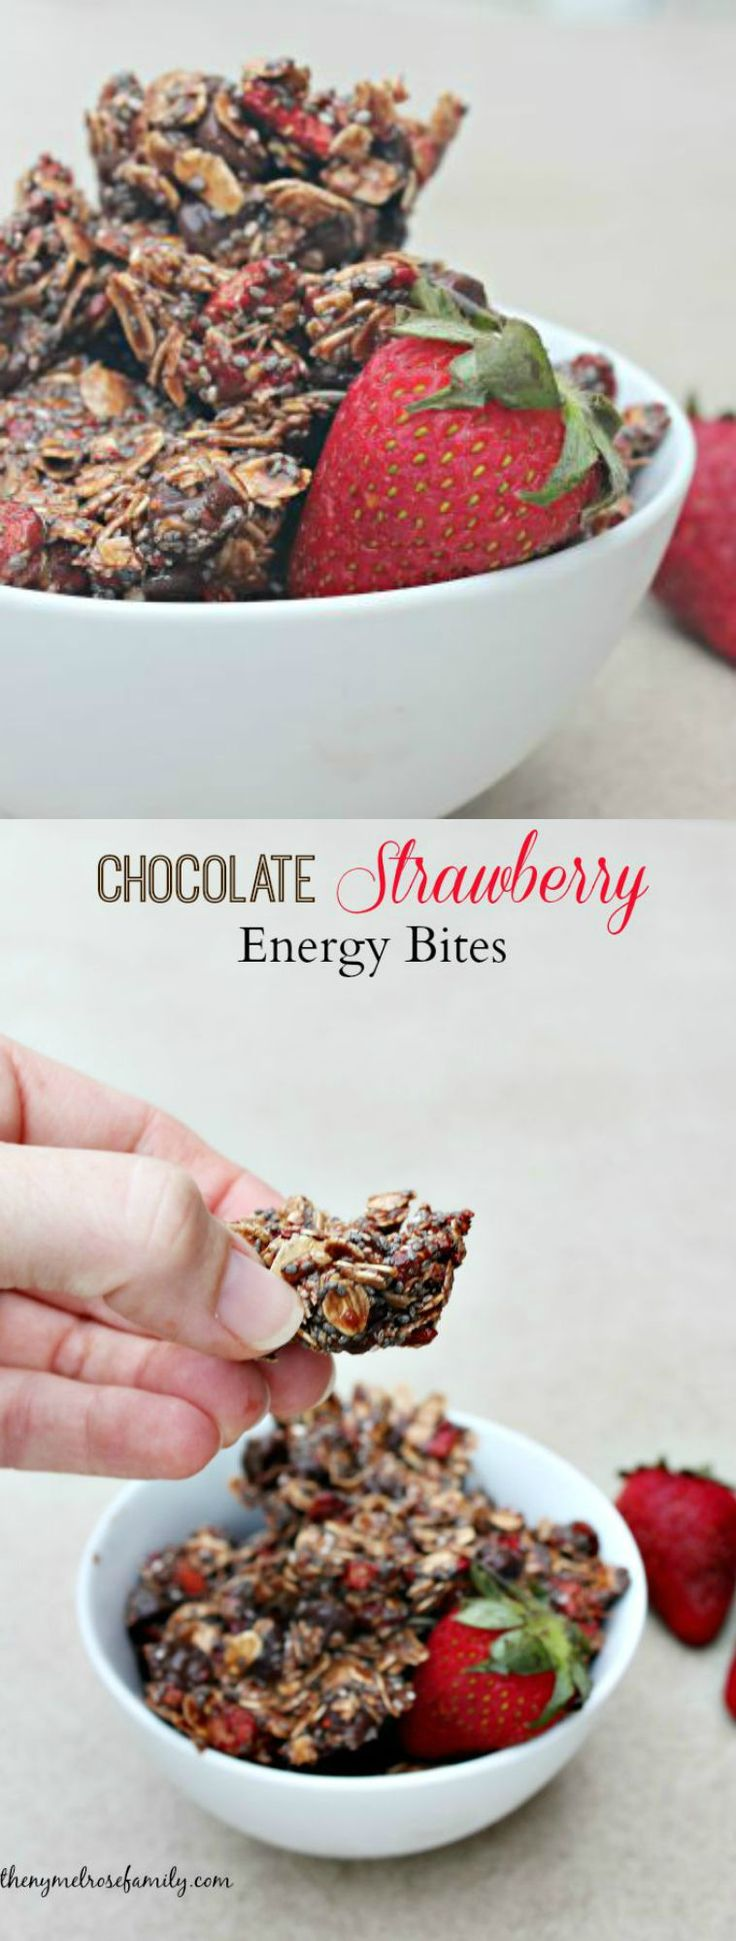 Chocolate Strawberry Energy Bites are the perfect healthy snack for a quick pick me up that are gluten-free and absolutely delicious!